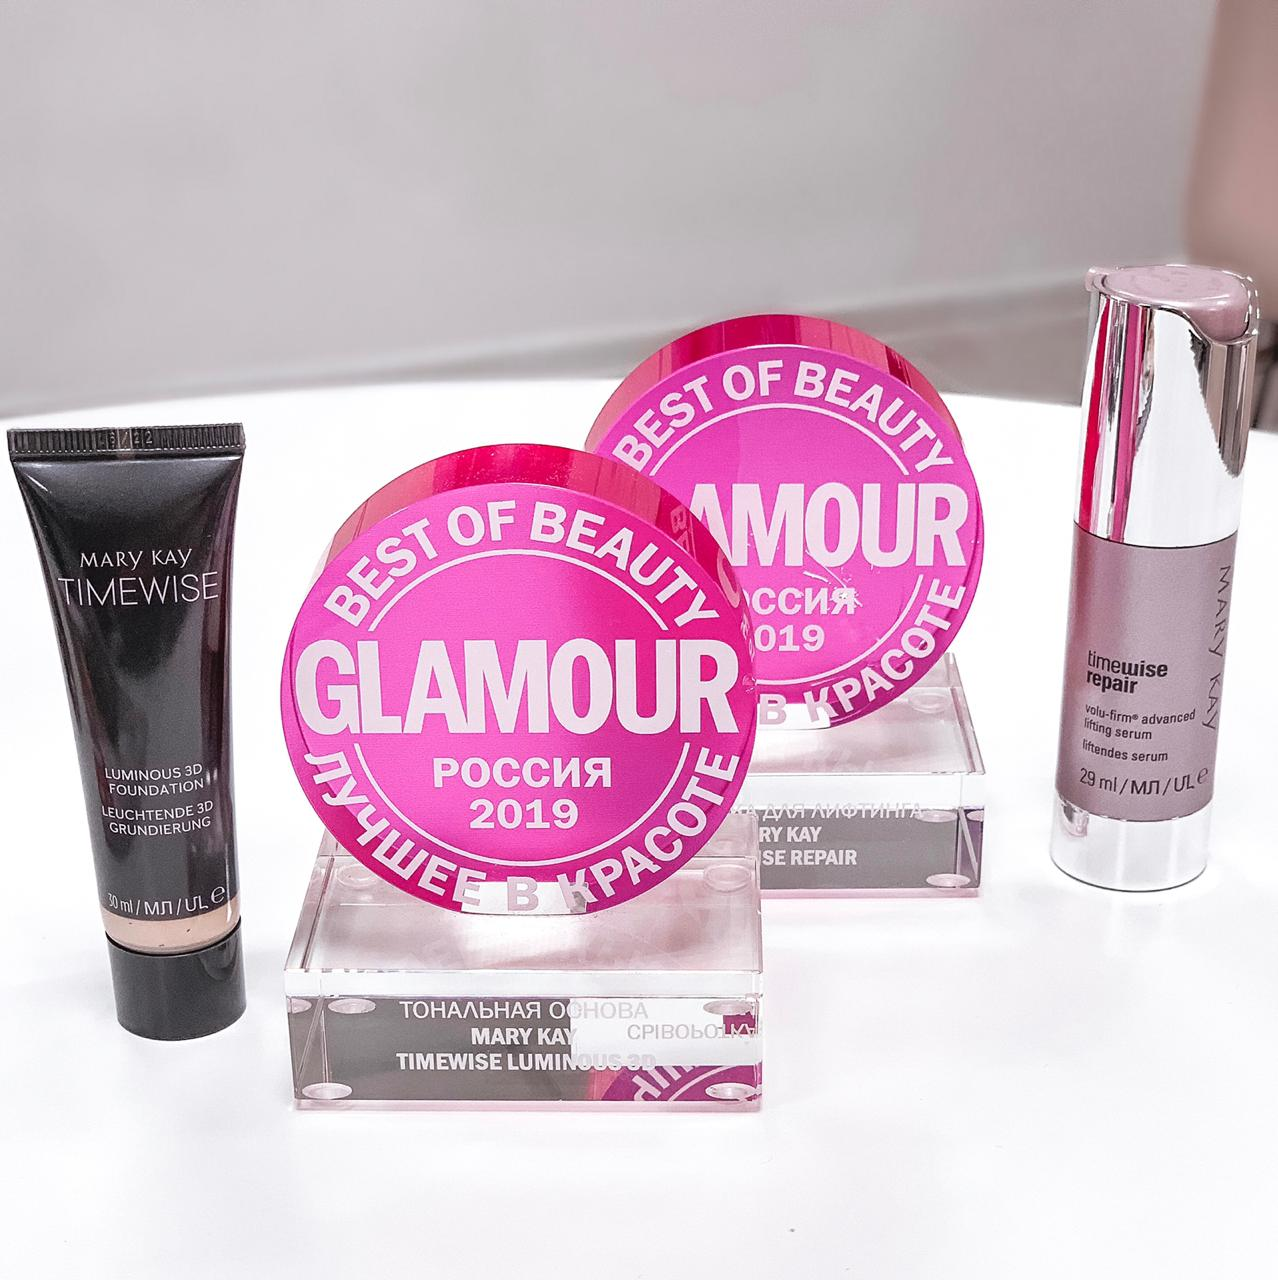 Glamour Best of Beauty